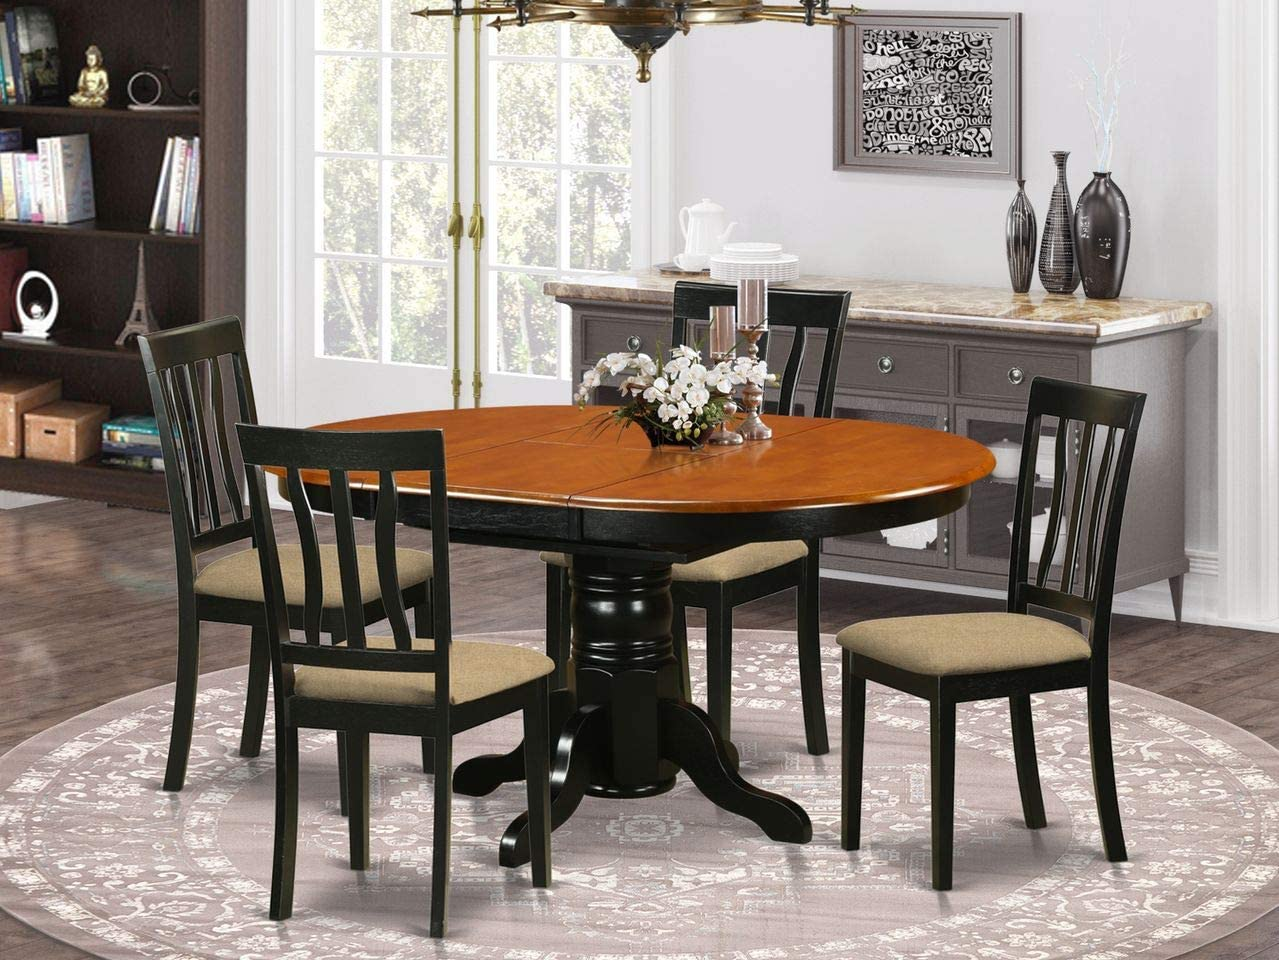 East West Furniture Avat5 Blk C Mid Century Dining Table Set 4 Amazing Wooden Chairs A Stunning Wood Dining Table Linen Fabric Seat Black And Cherry Finish Butterfly Leaf Kitchen Table